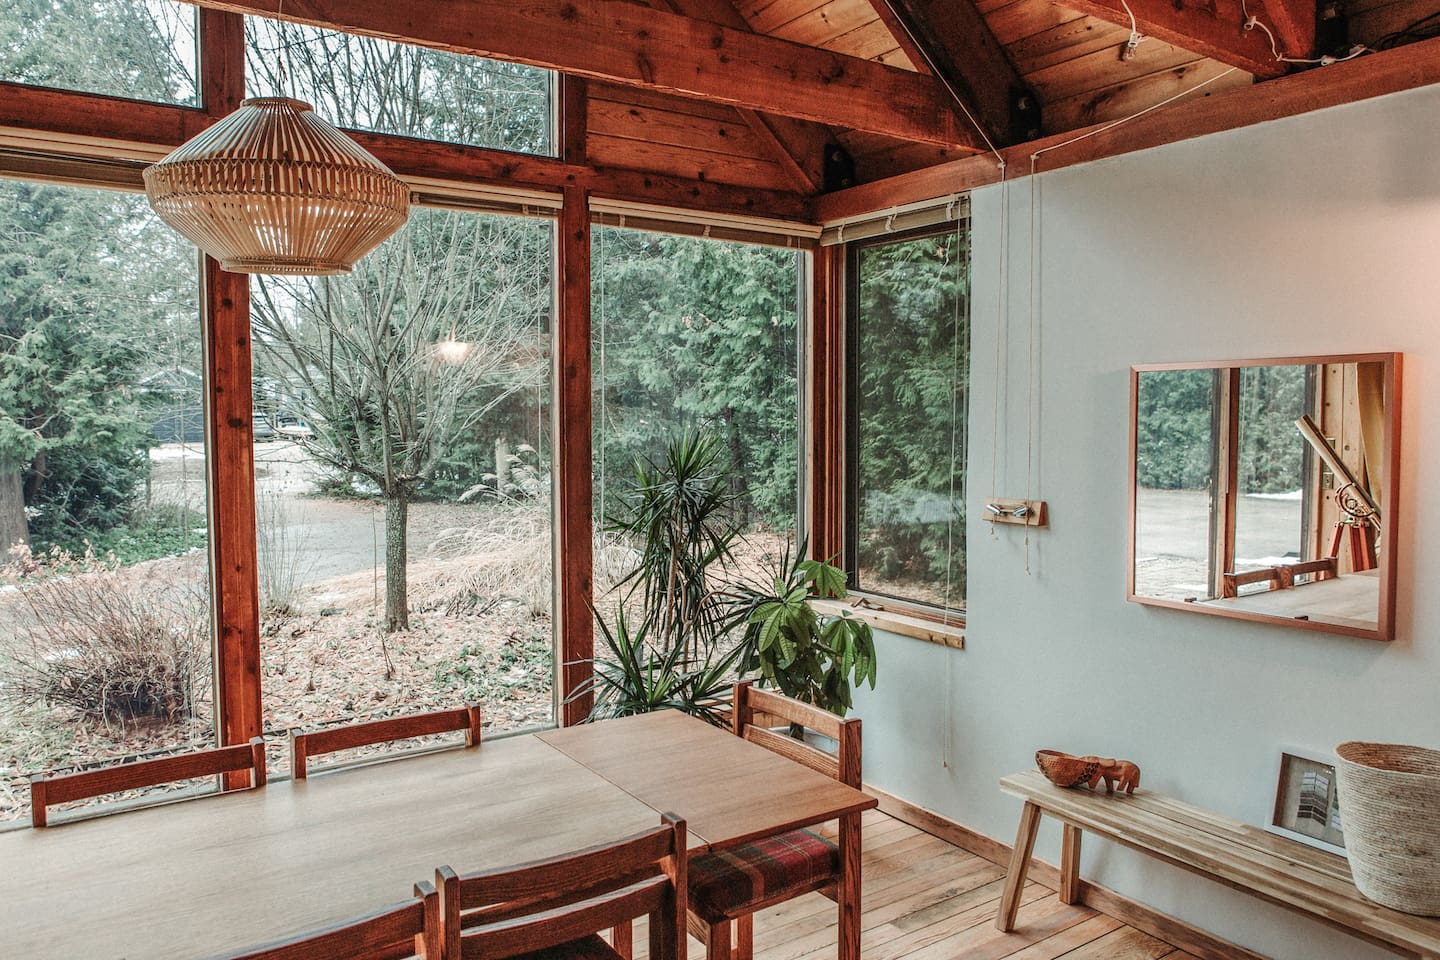 Dining room view to the private cul-de-sac